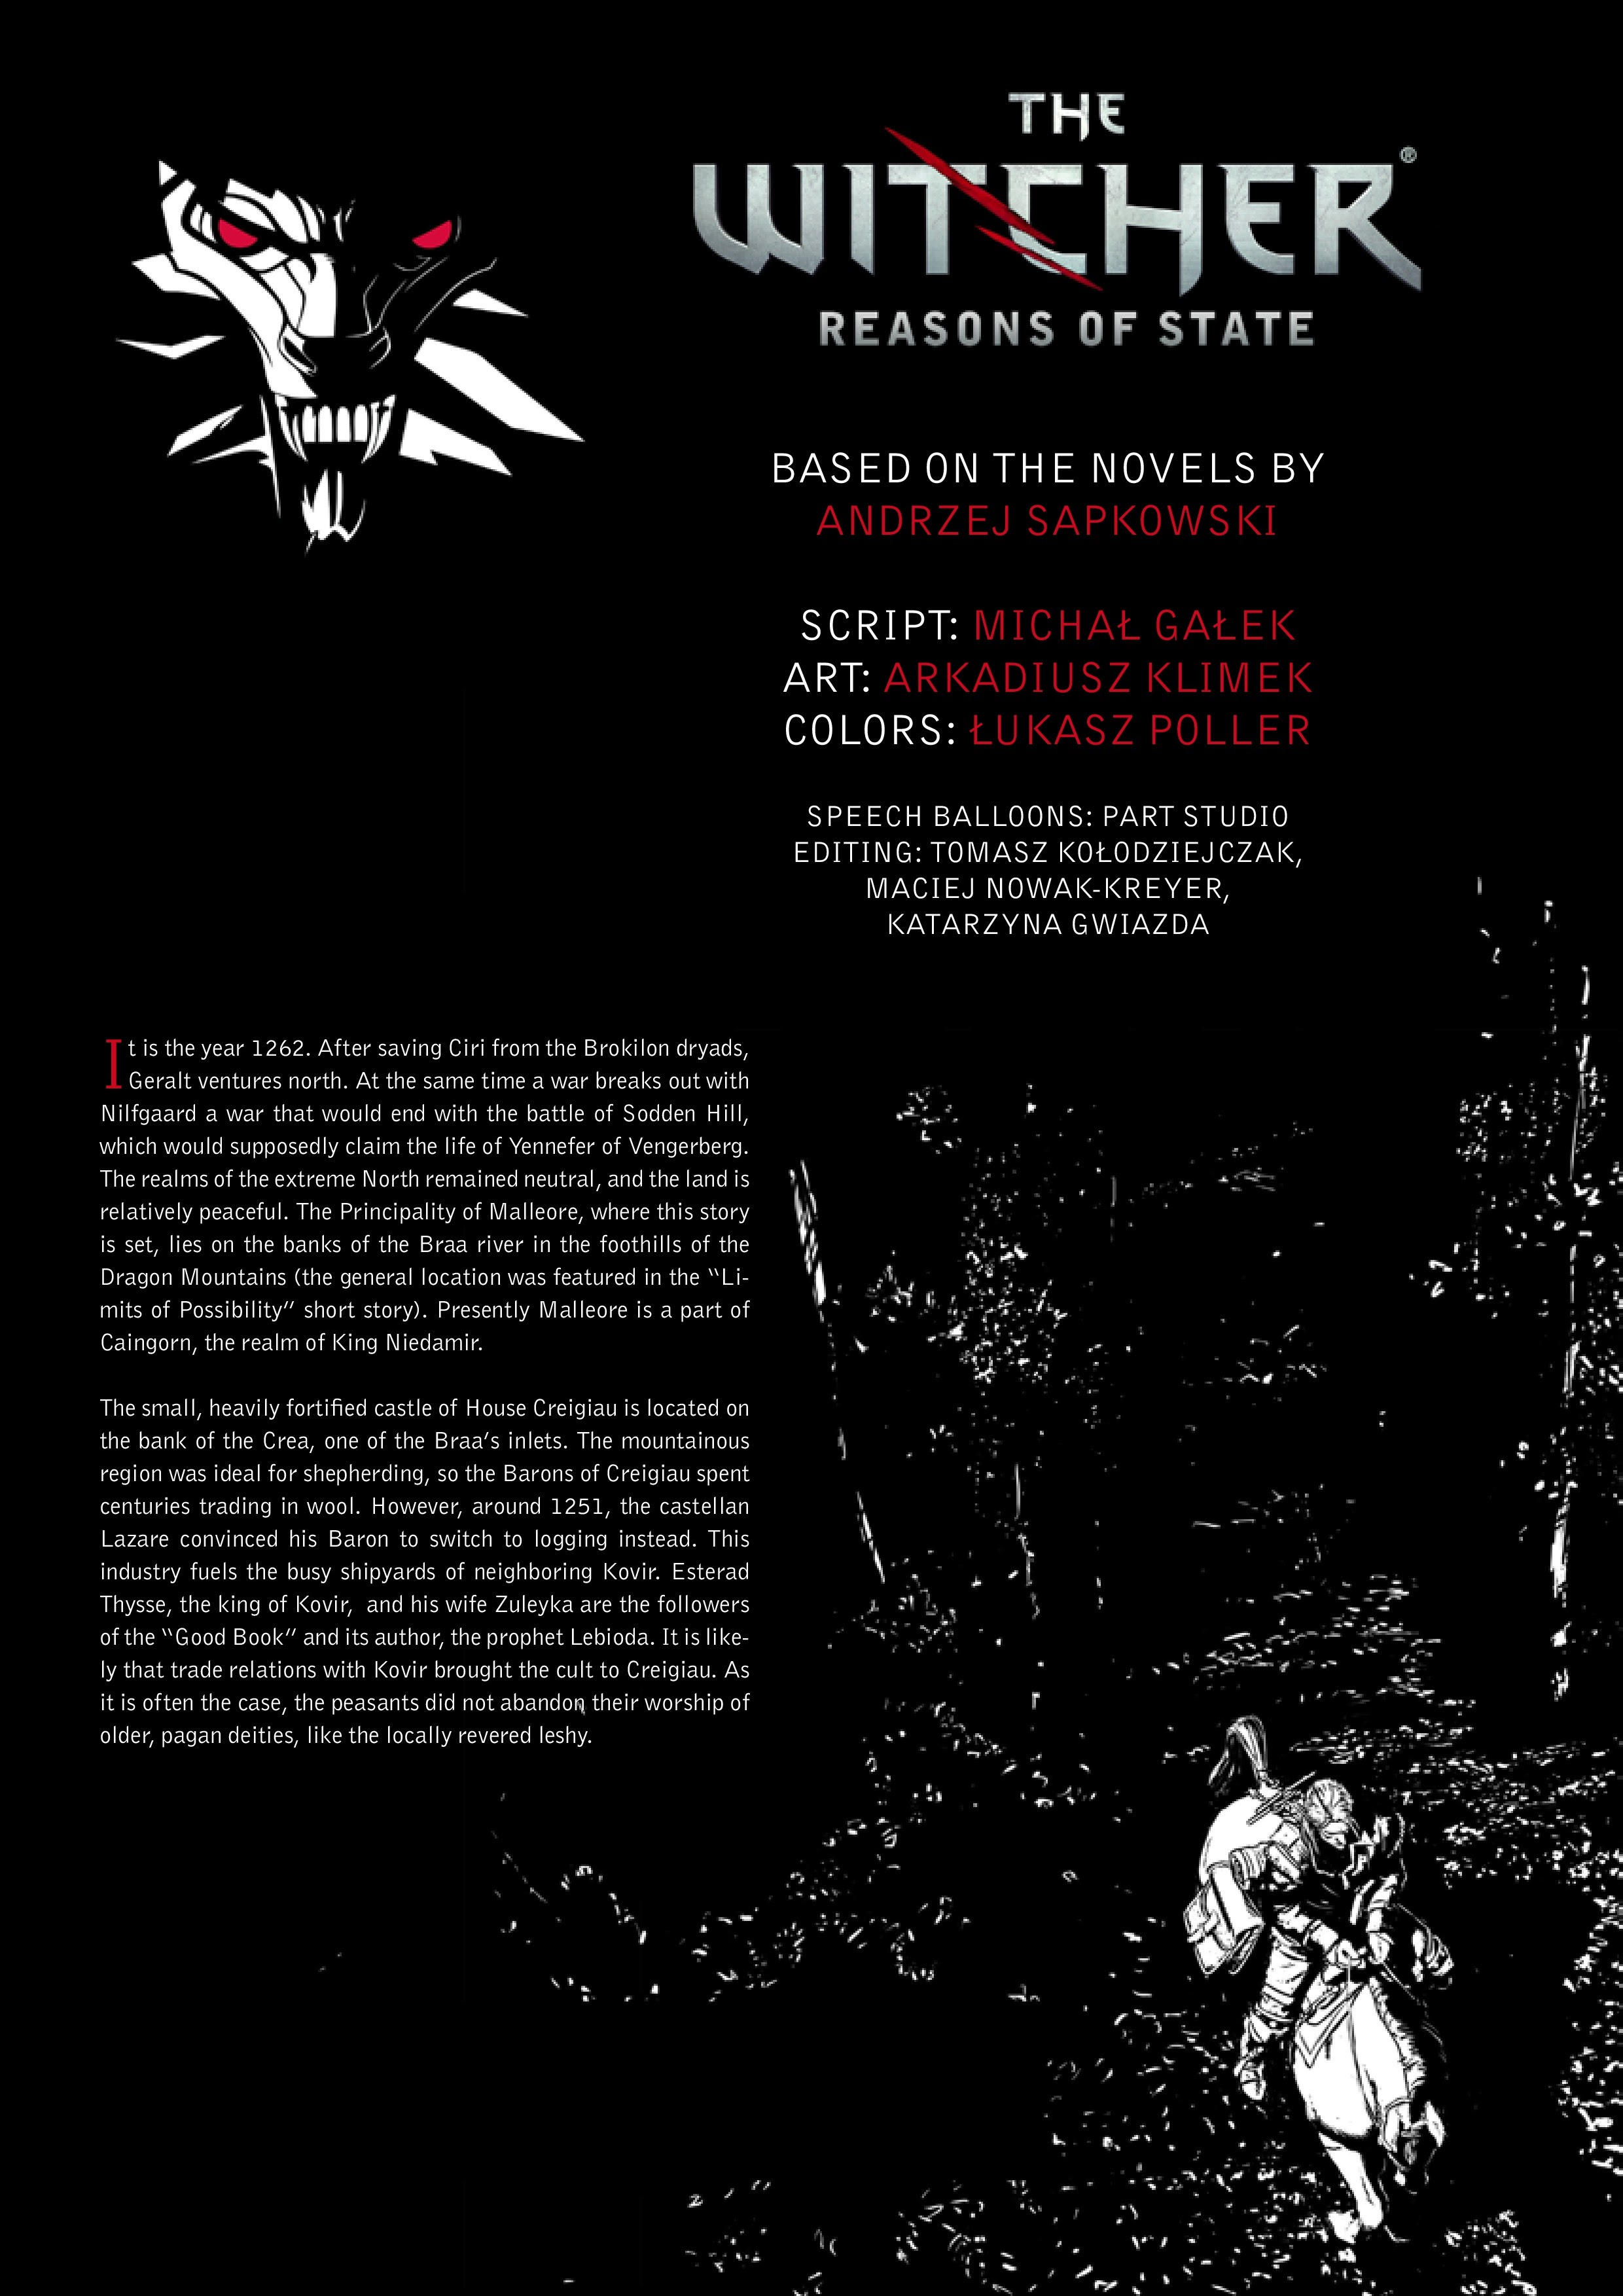 The Witcher: Reasons of State Full Page 2